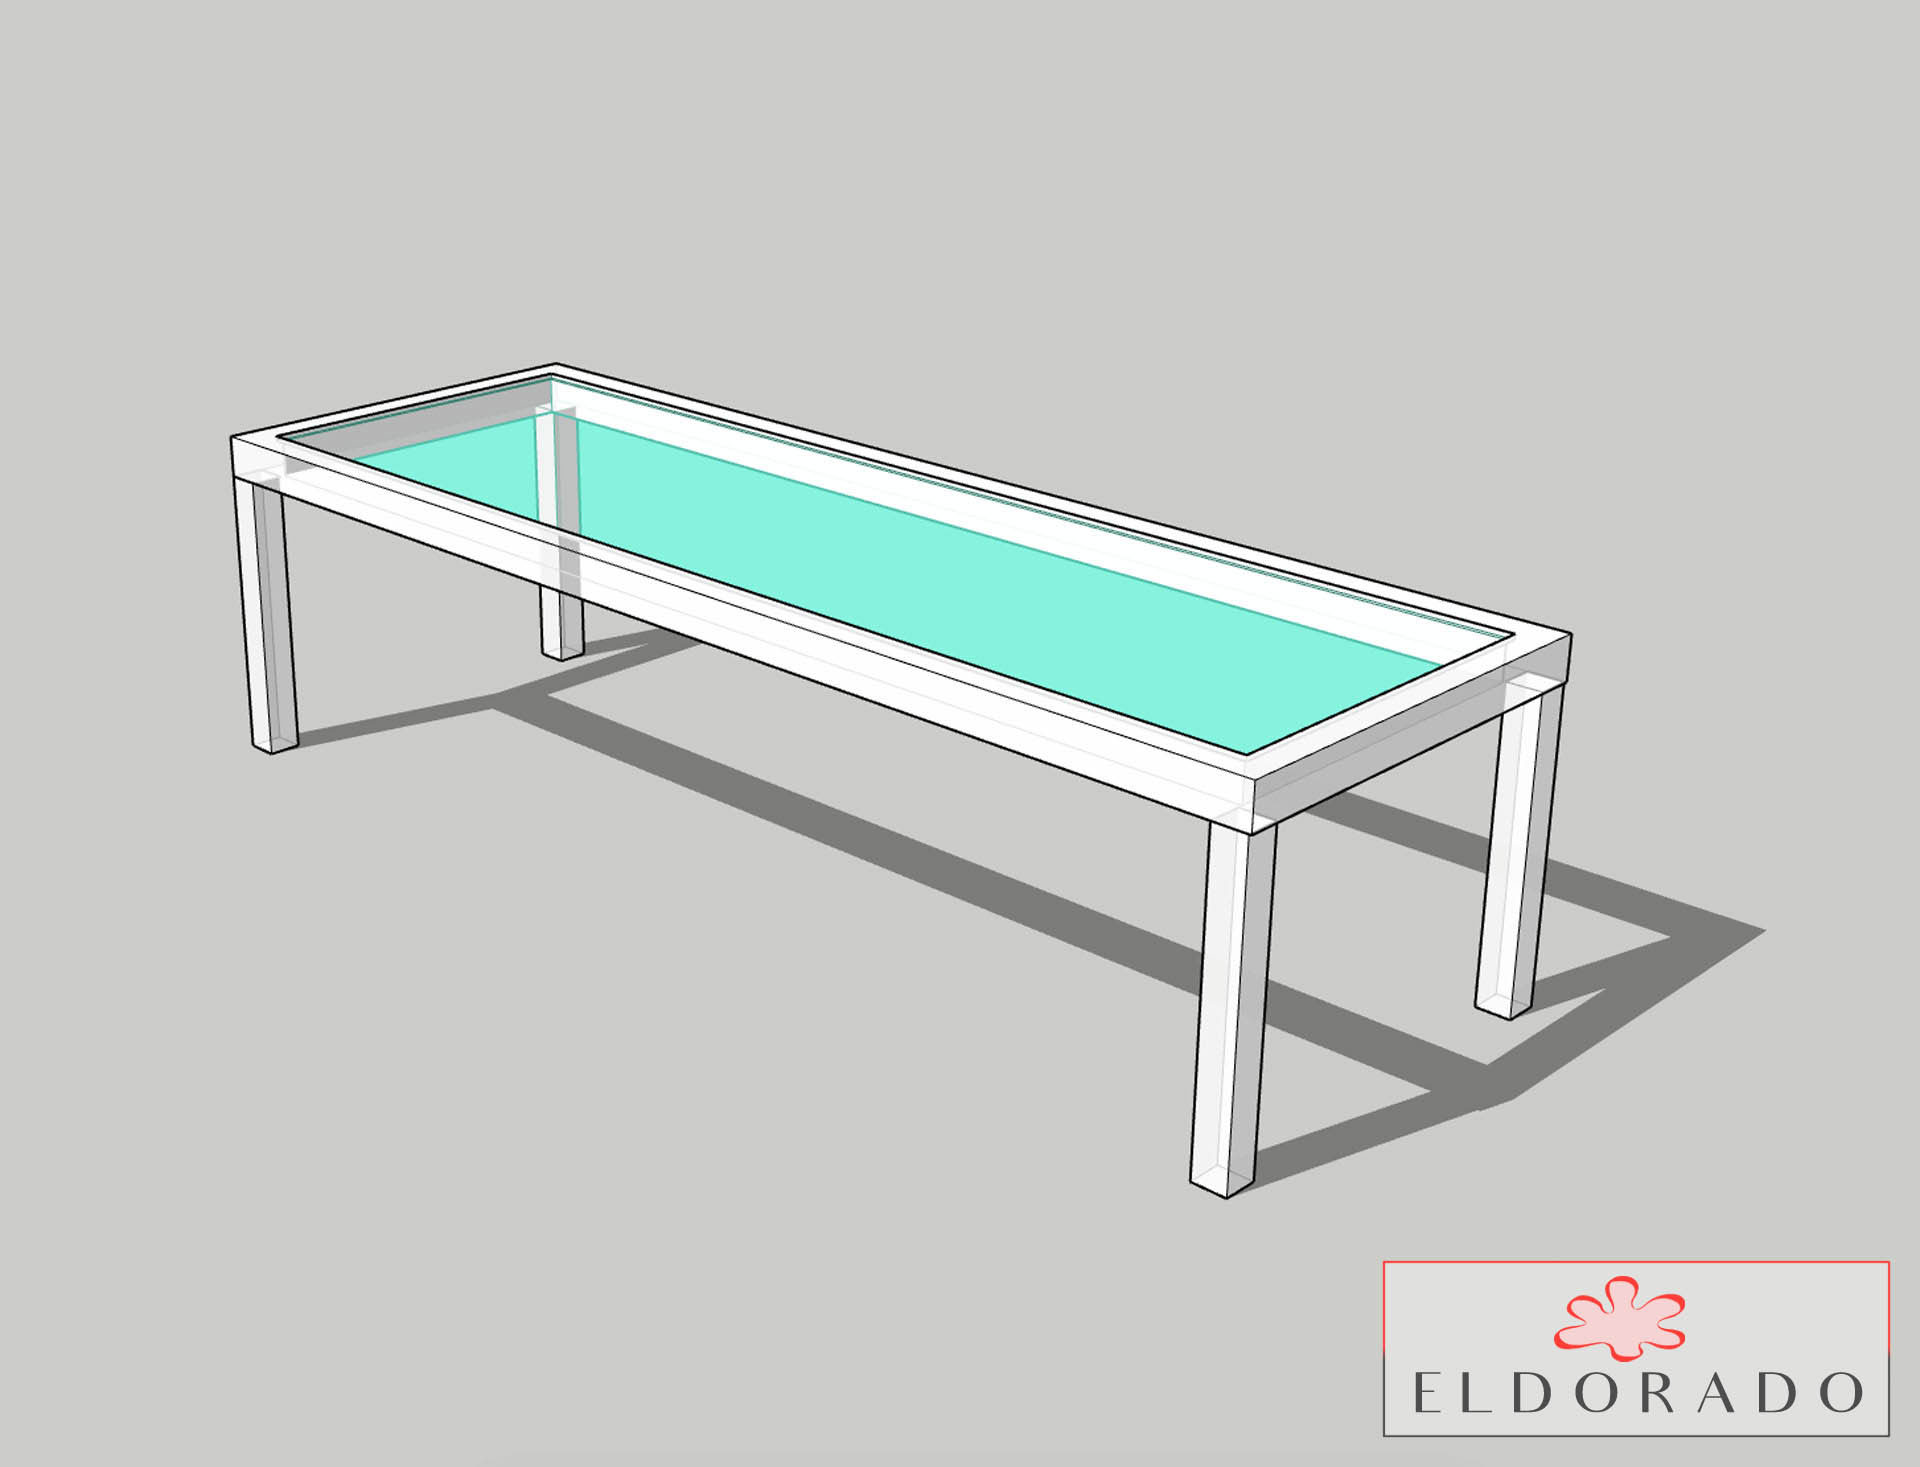 tavoli-riunione-modello-missing-3-acrylic-meeting-room-table-missing-jpg